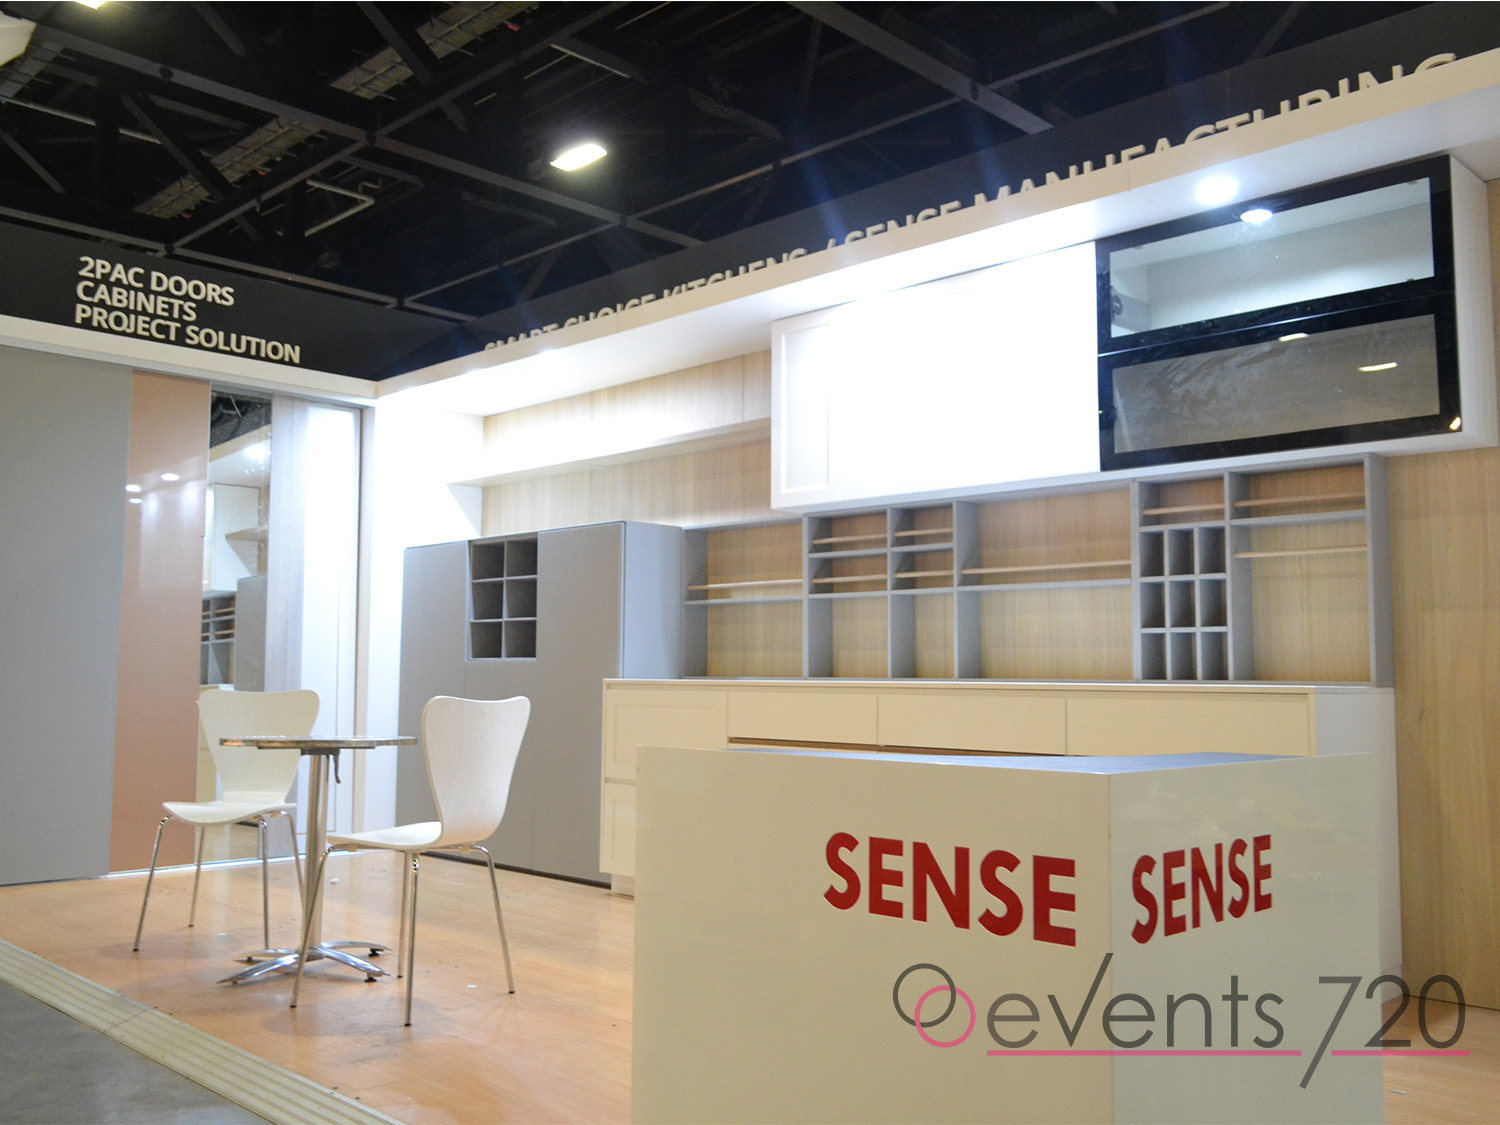 Smart Choice Kitchens Exhibition Stand